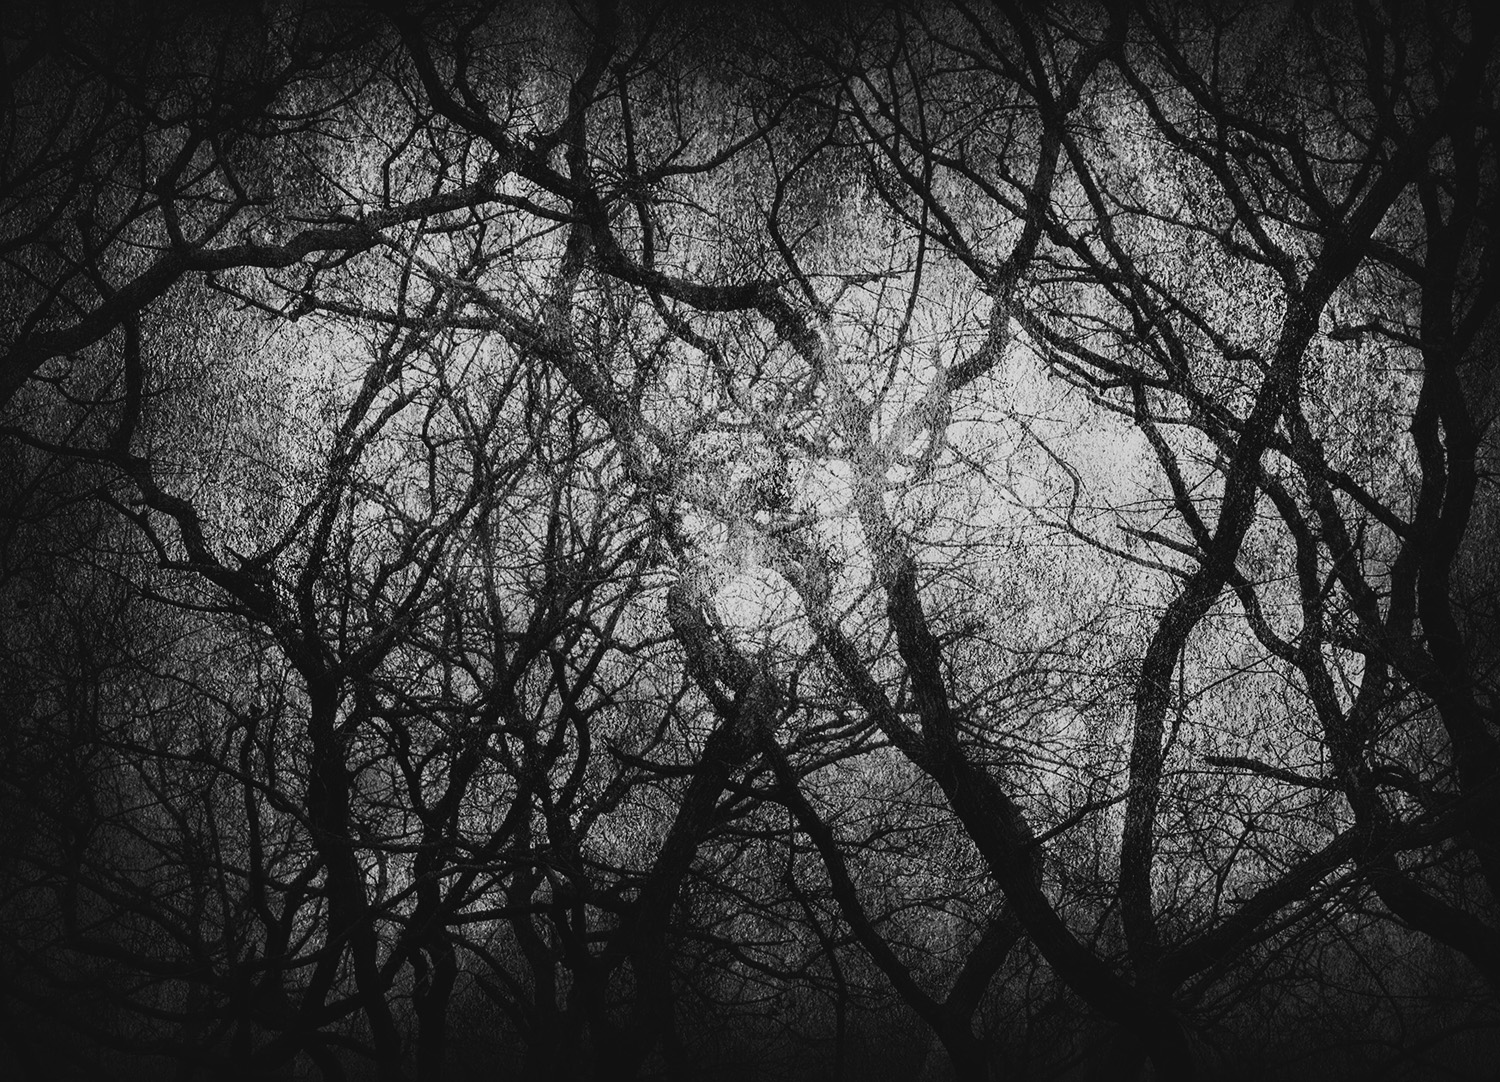 wg_tree_scape_textures10_bw